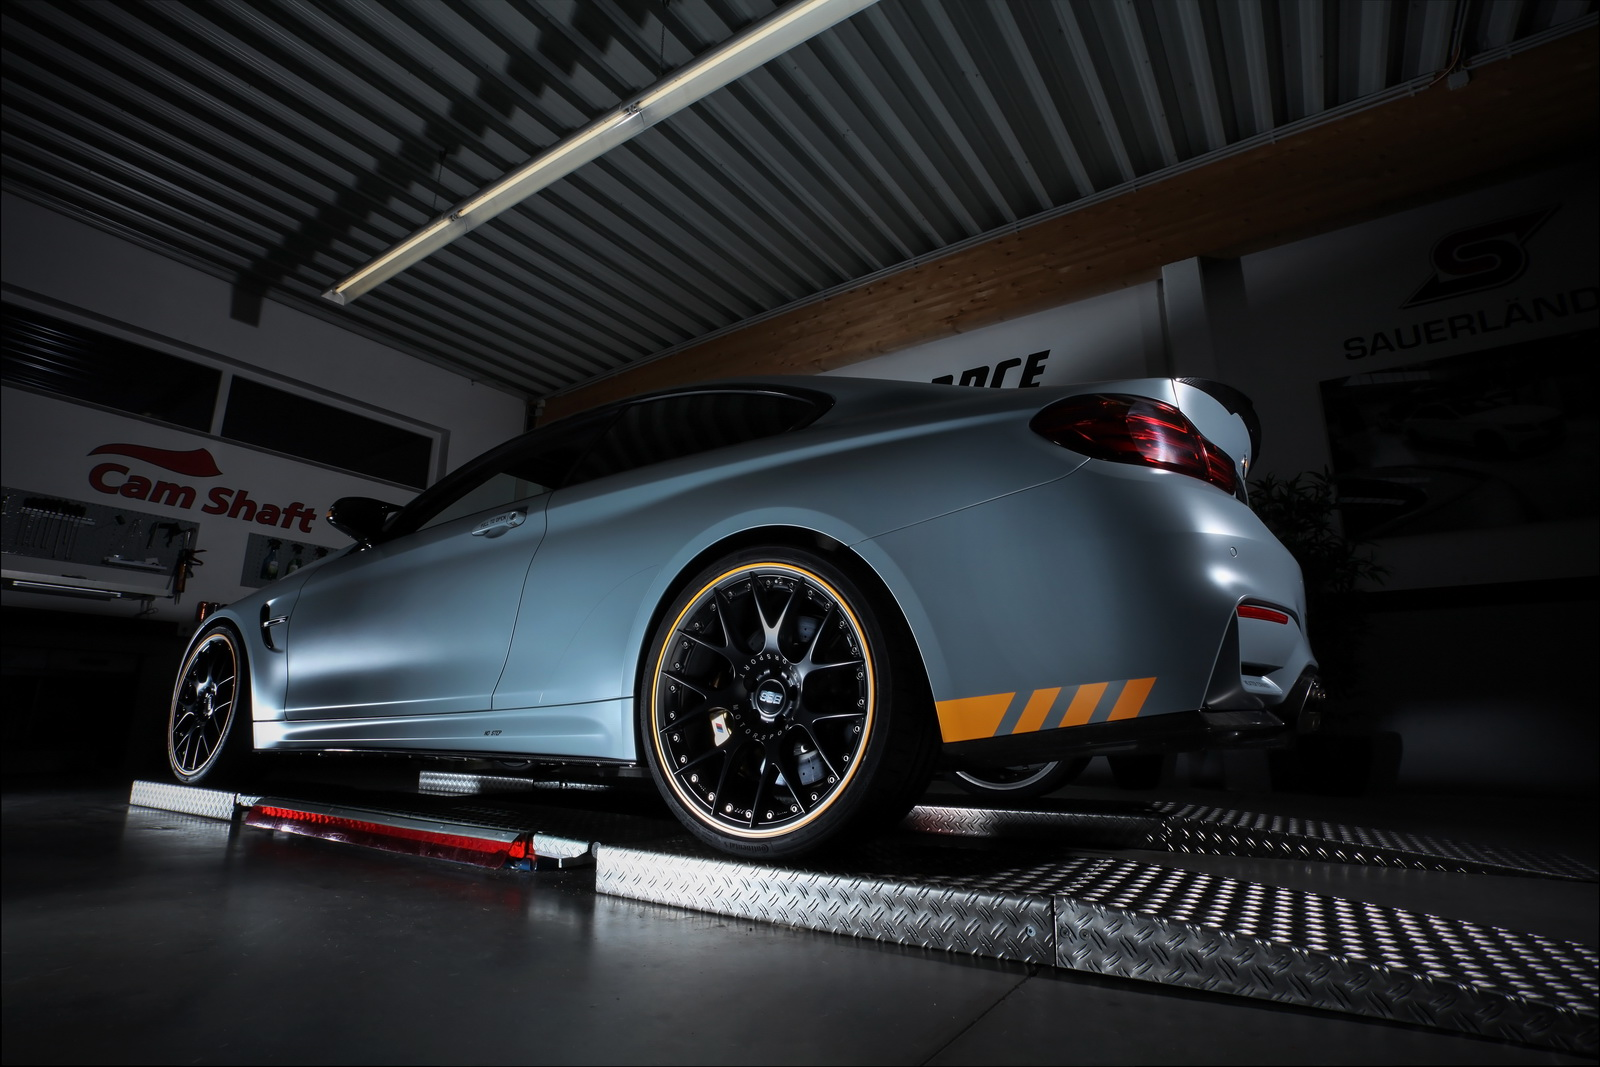 BMW M4 by Cam-Shaft (5)